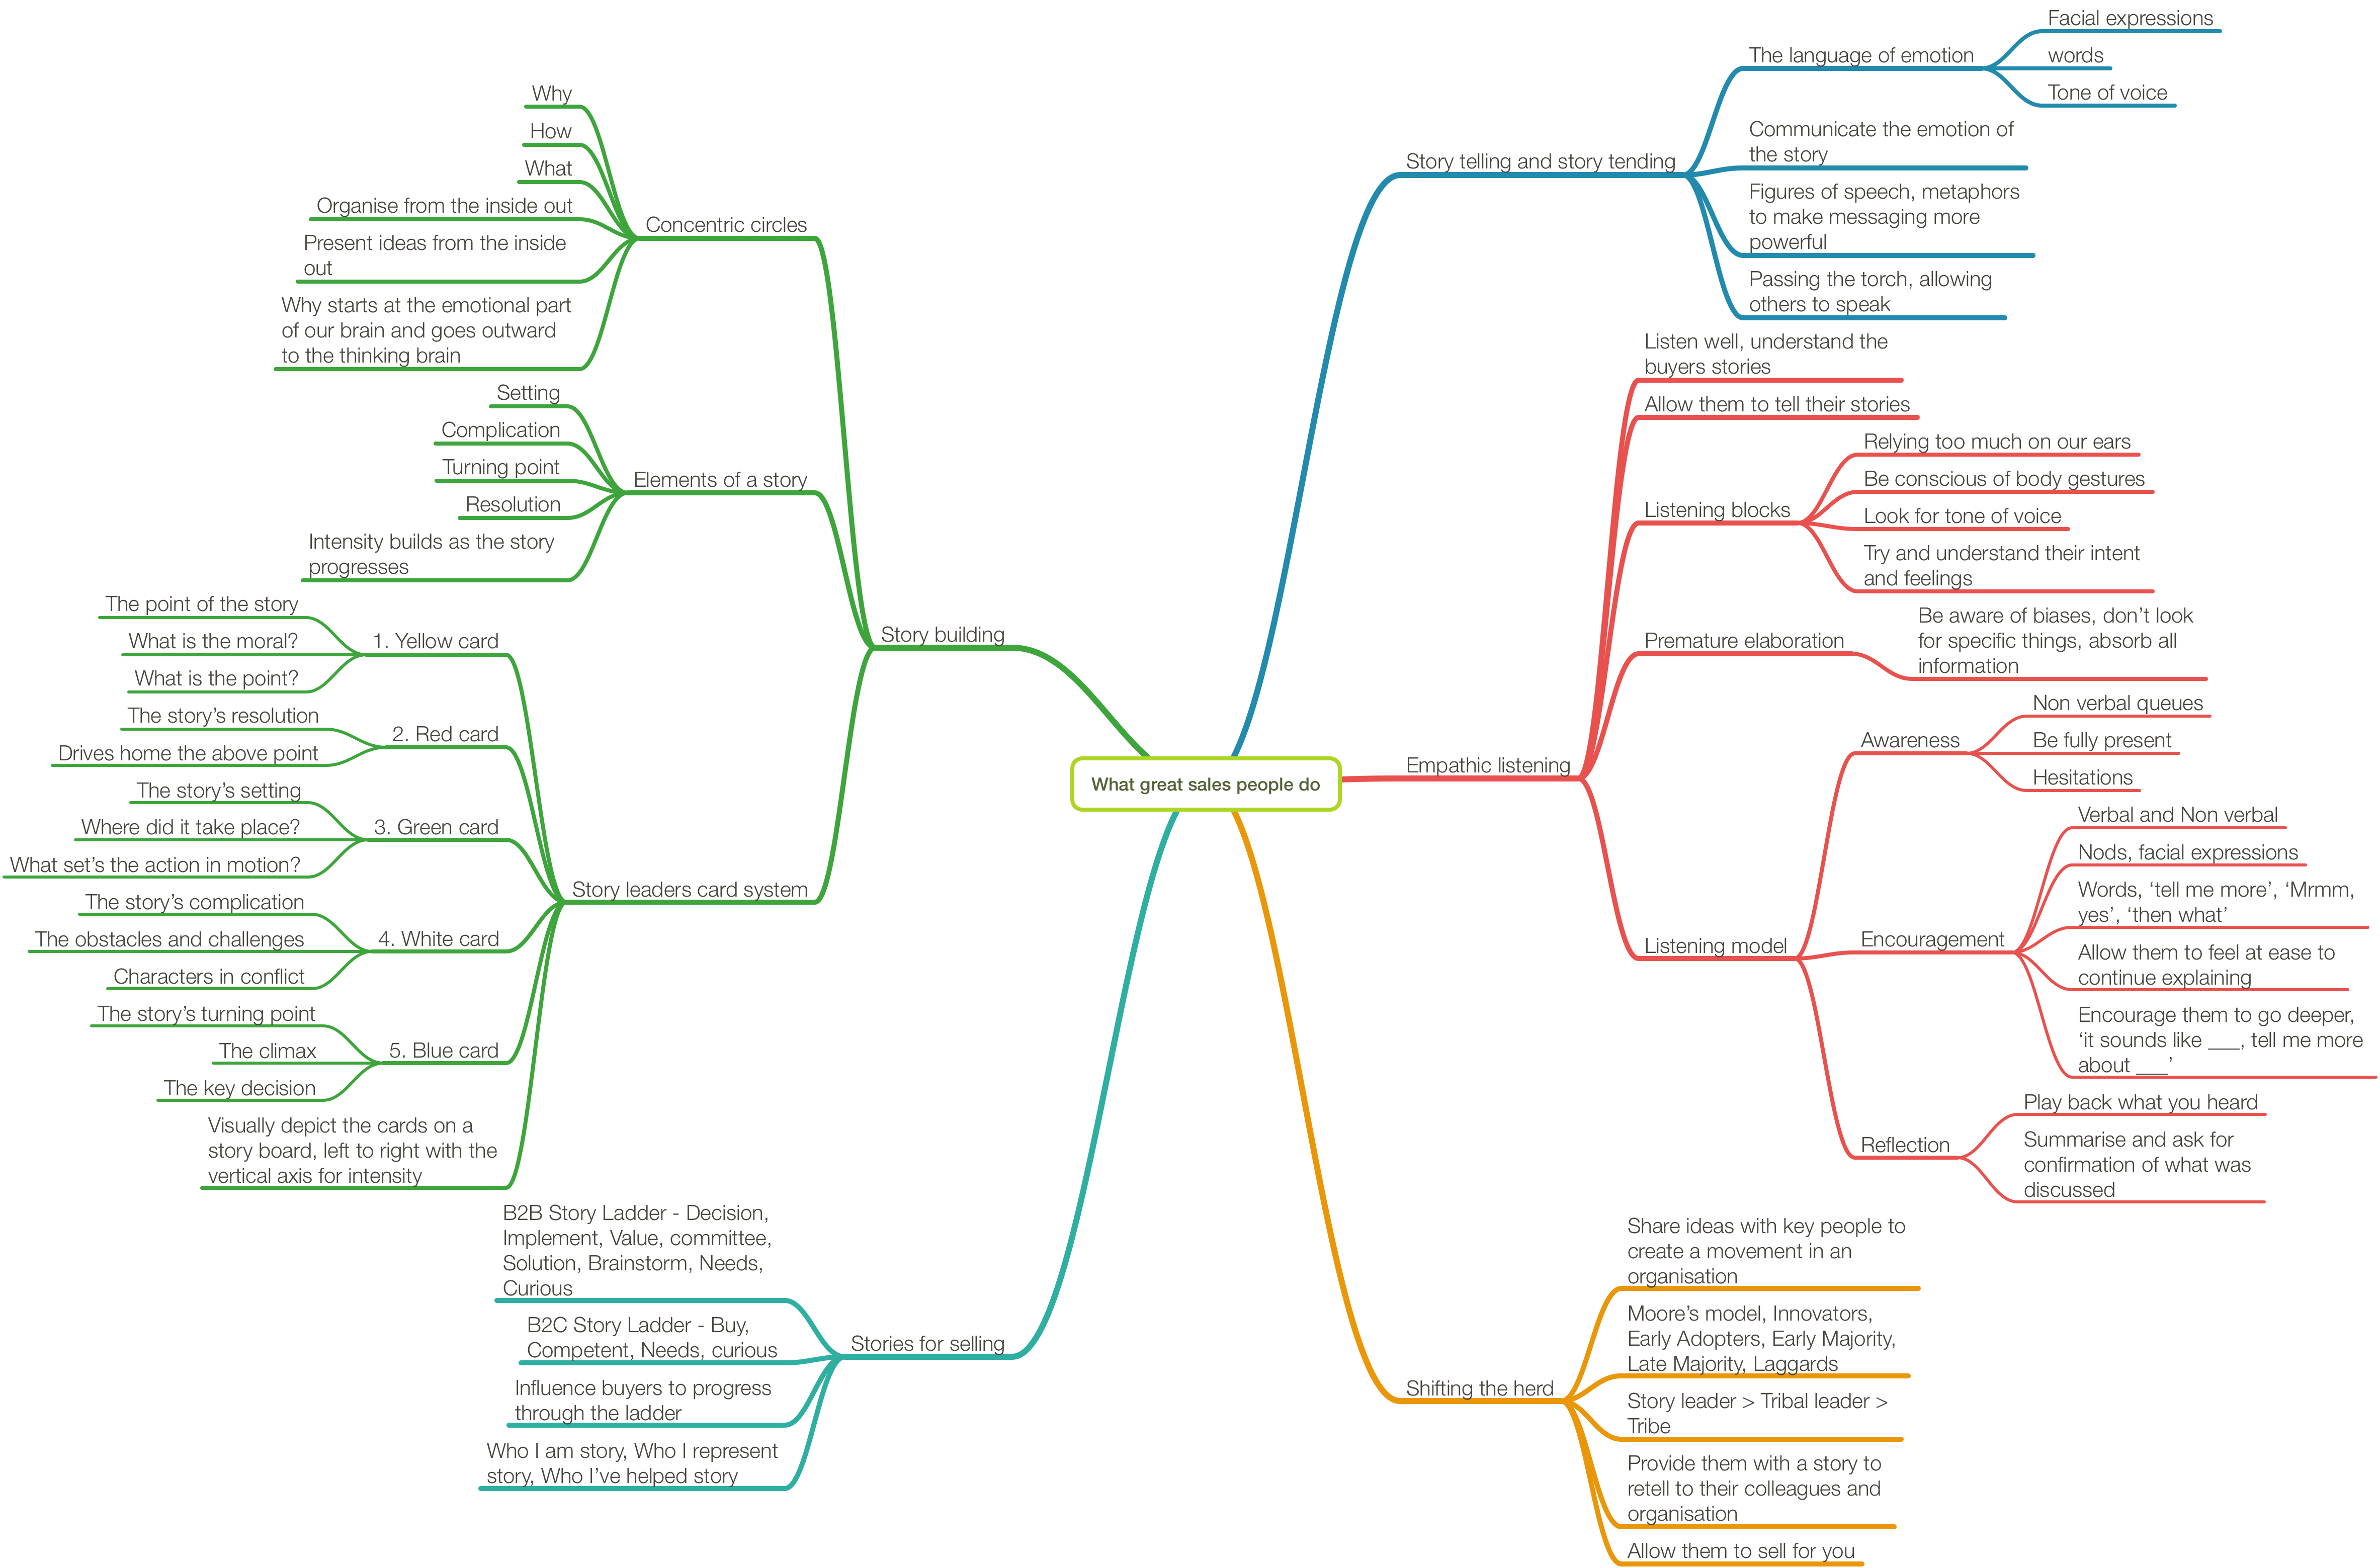 What Great Sales People Do Mind Map